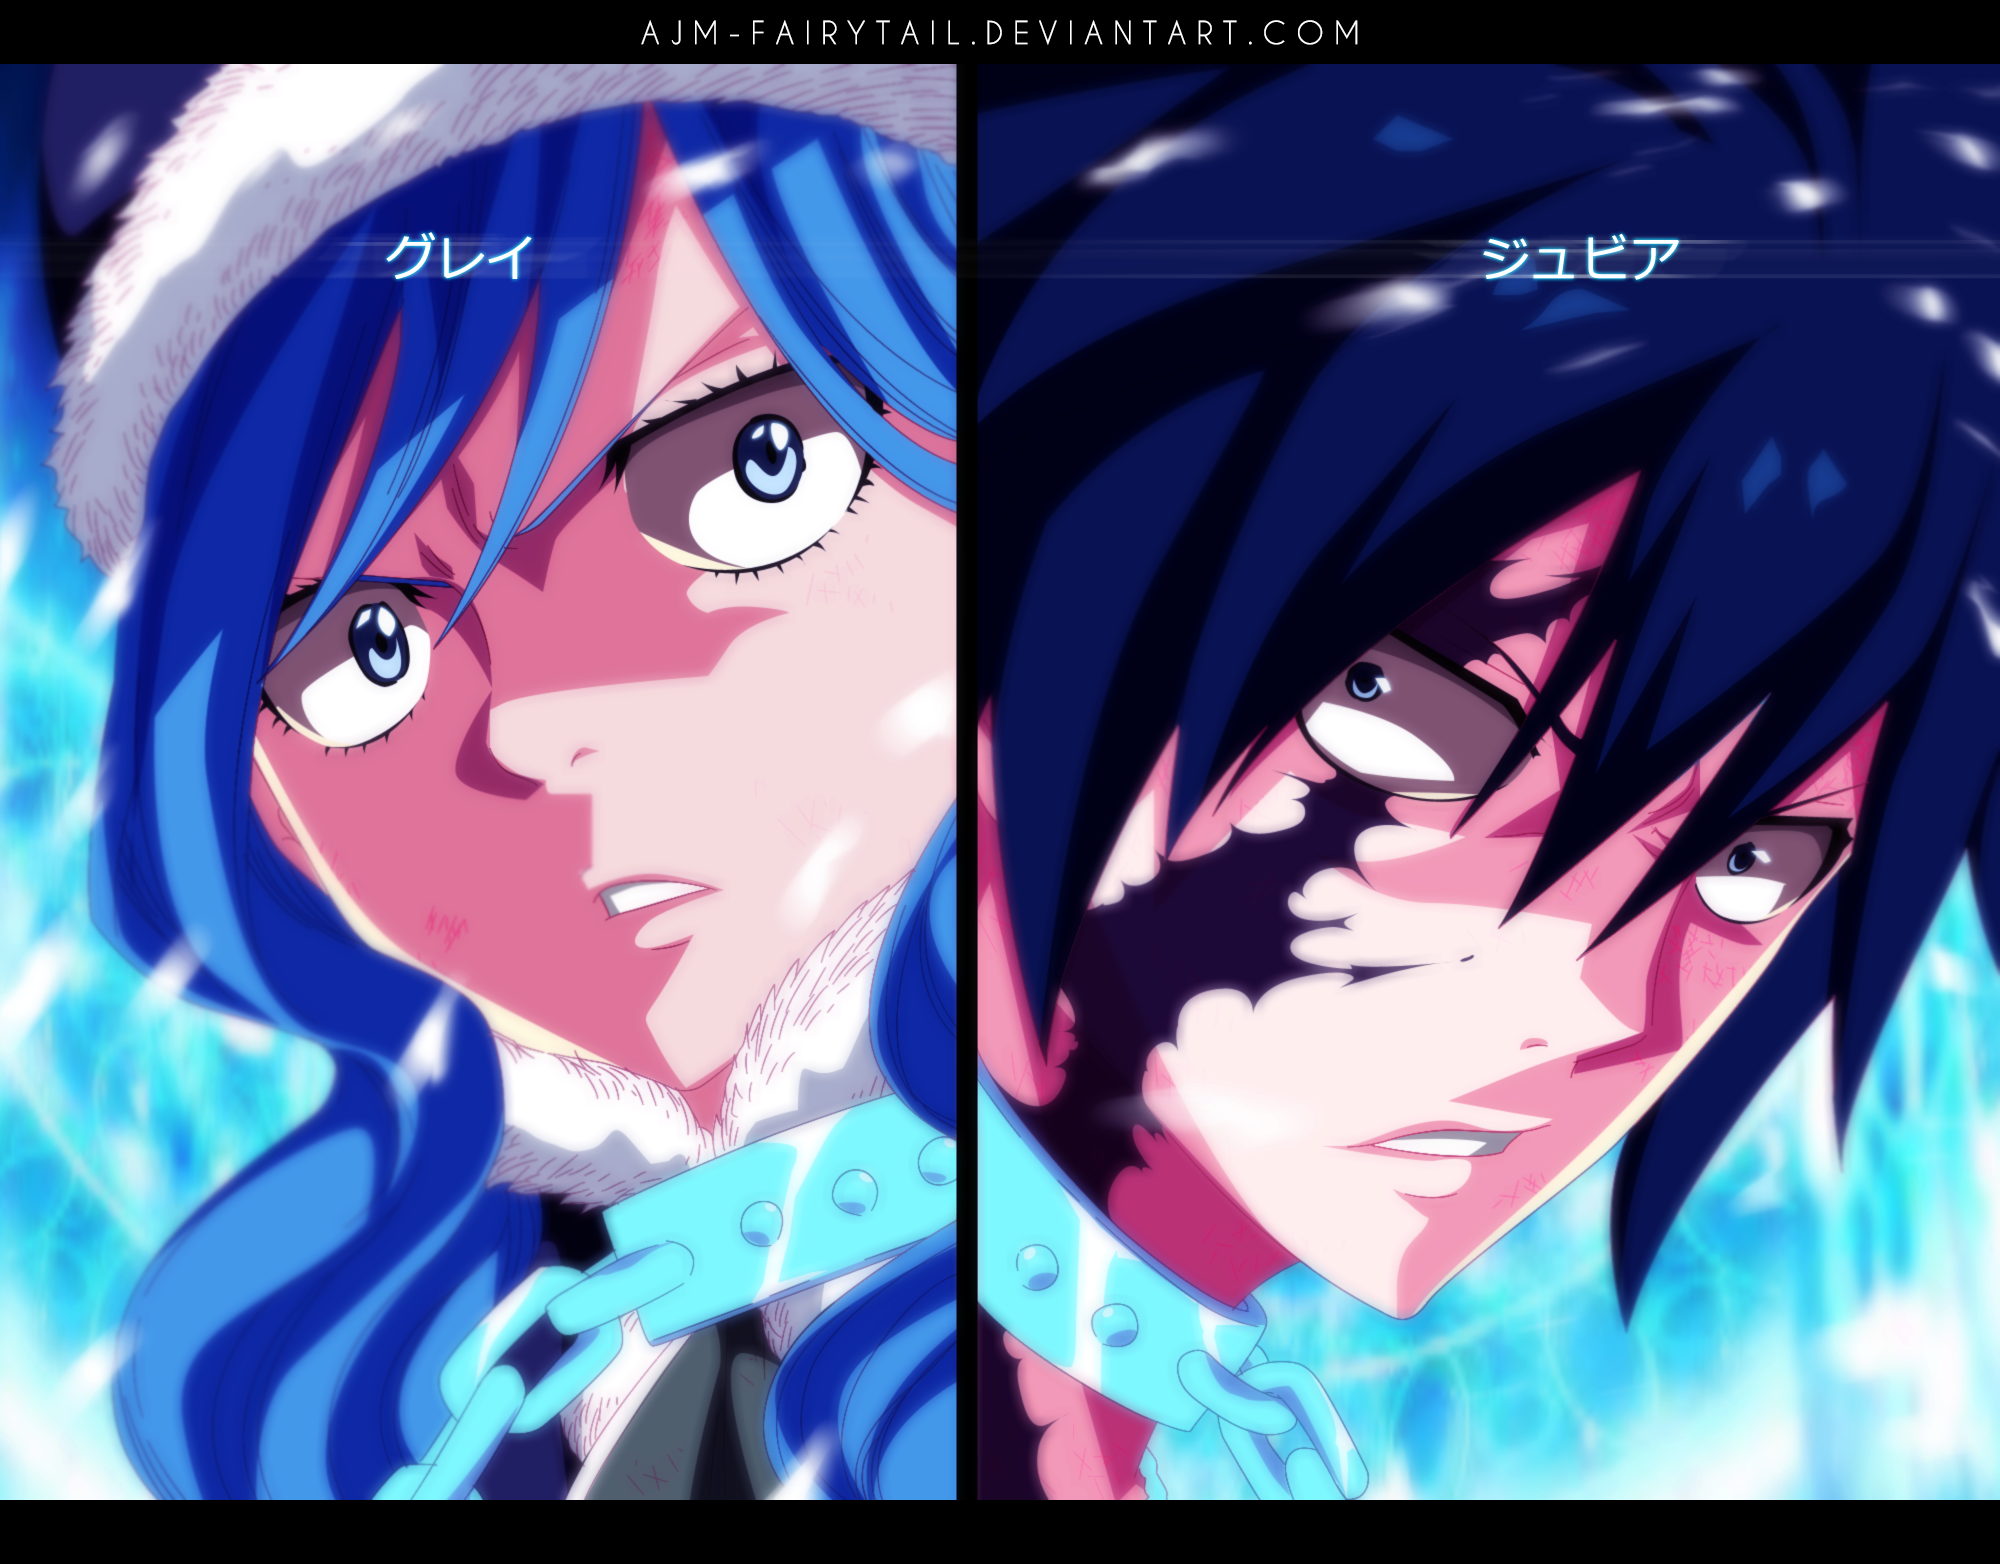 fairytail_face off by ajm-fairytail